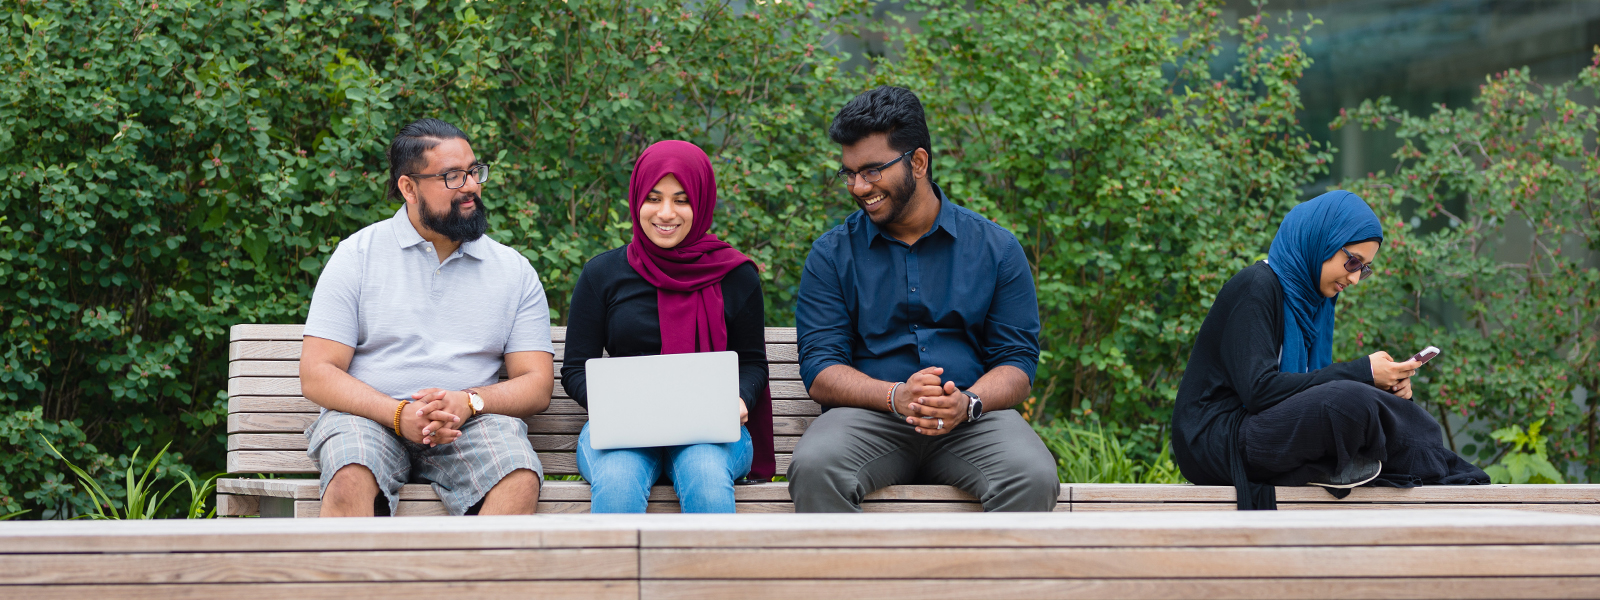 students sitting on bench looking at a laptop